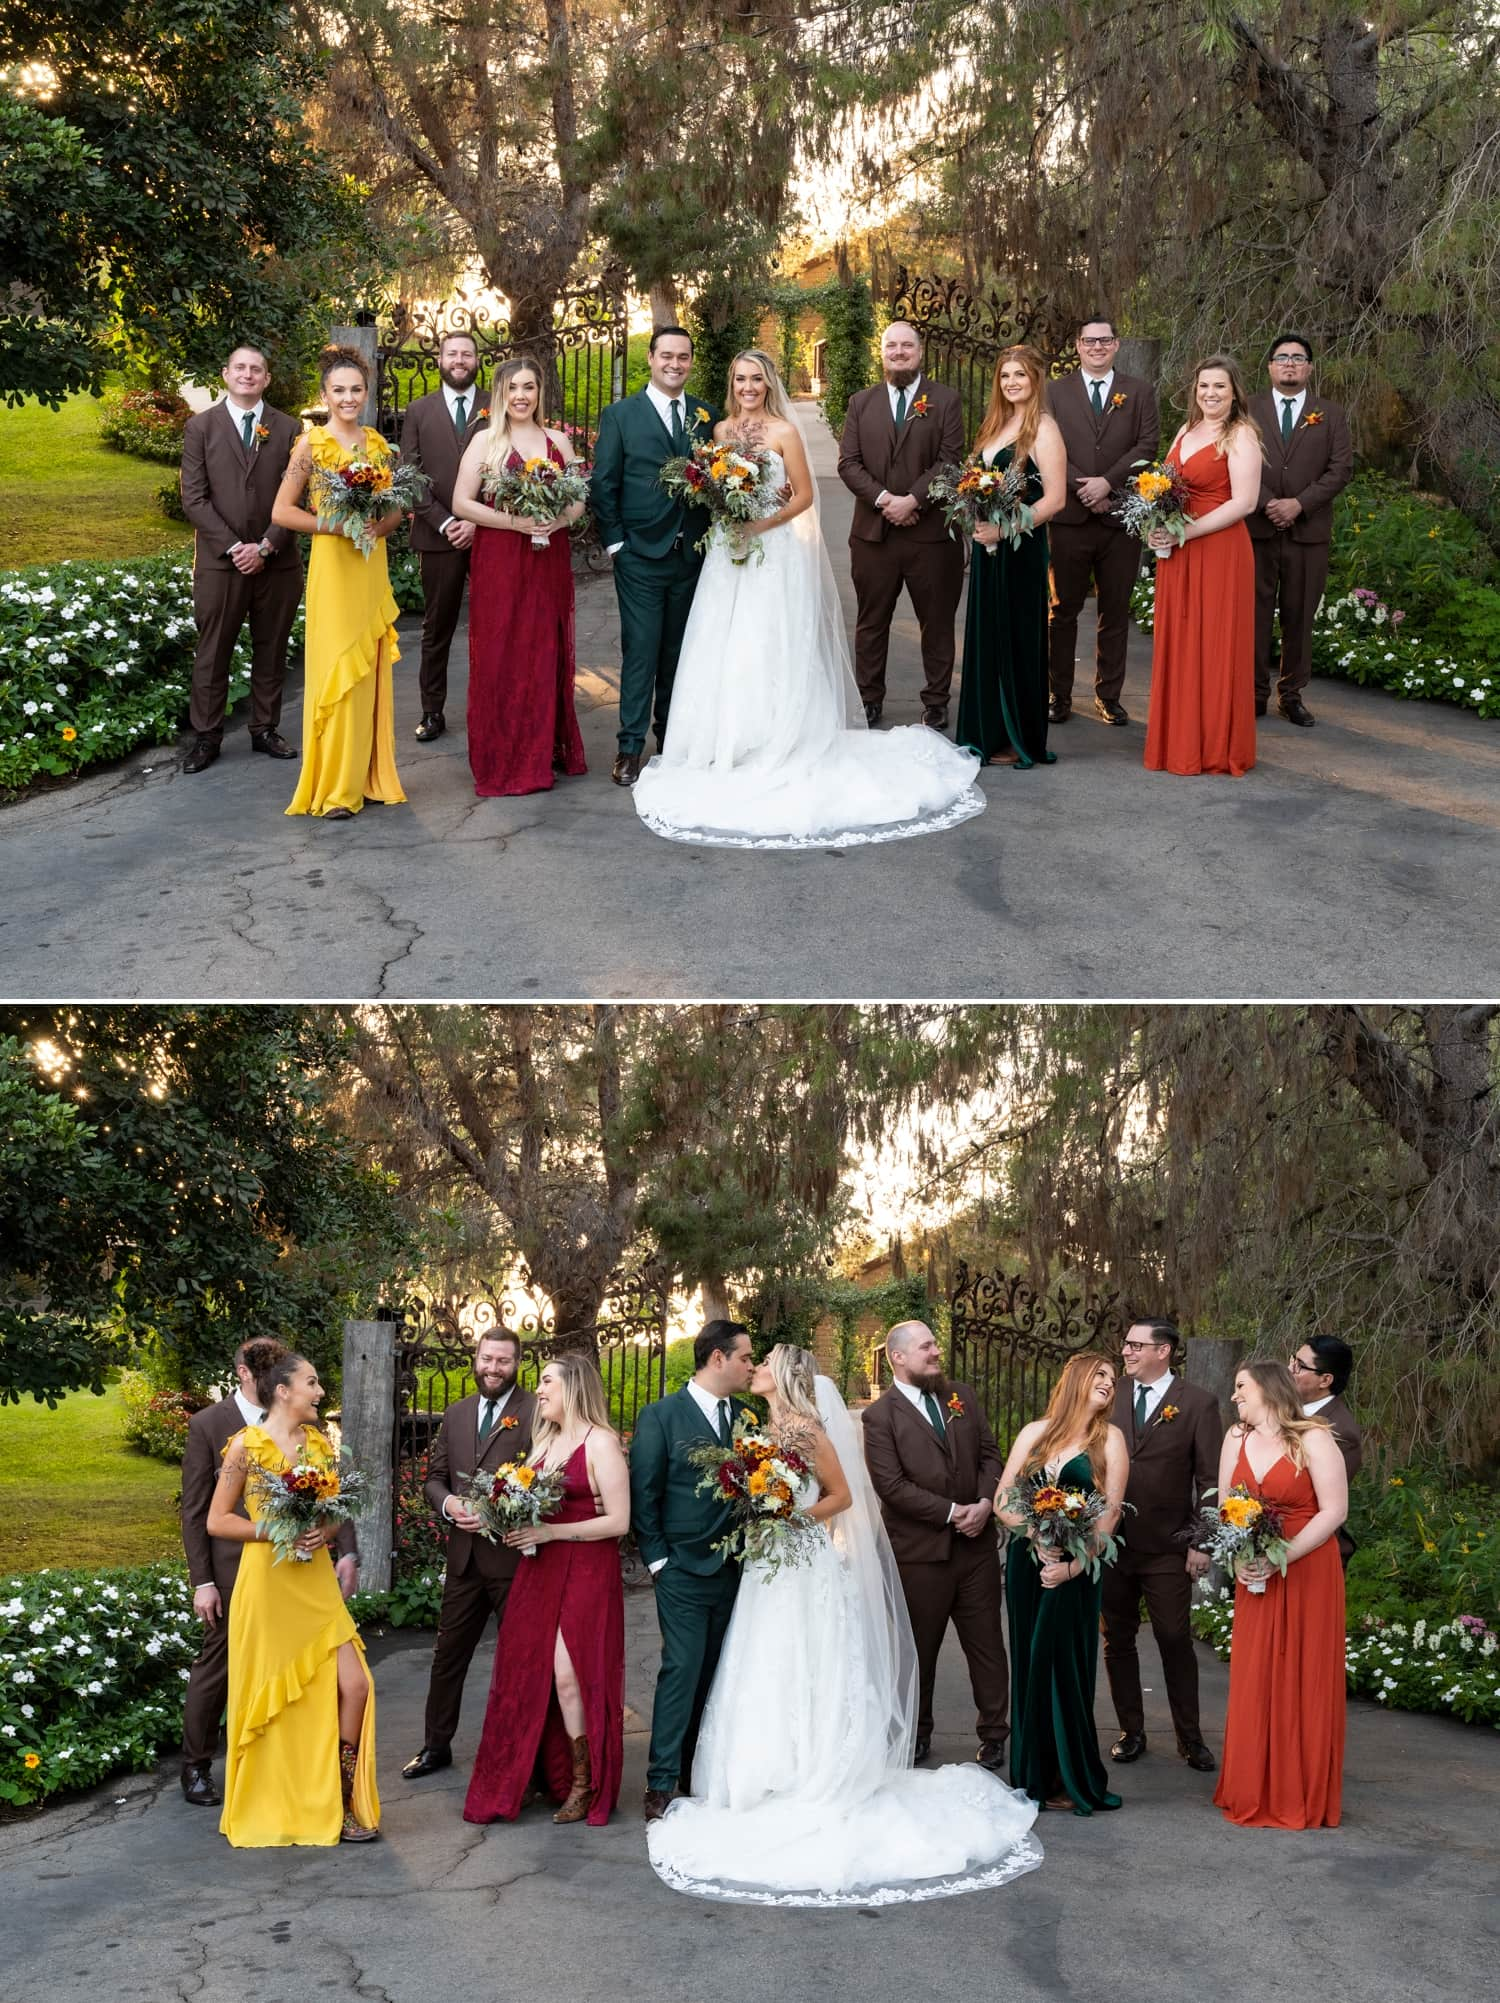 Wedding party in front of the gate at Ethereal Gardens in Escondido, CA.